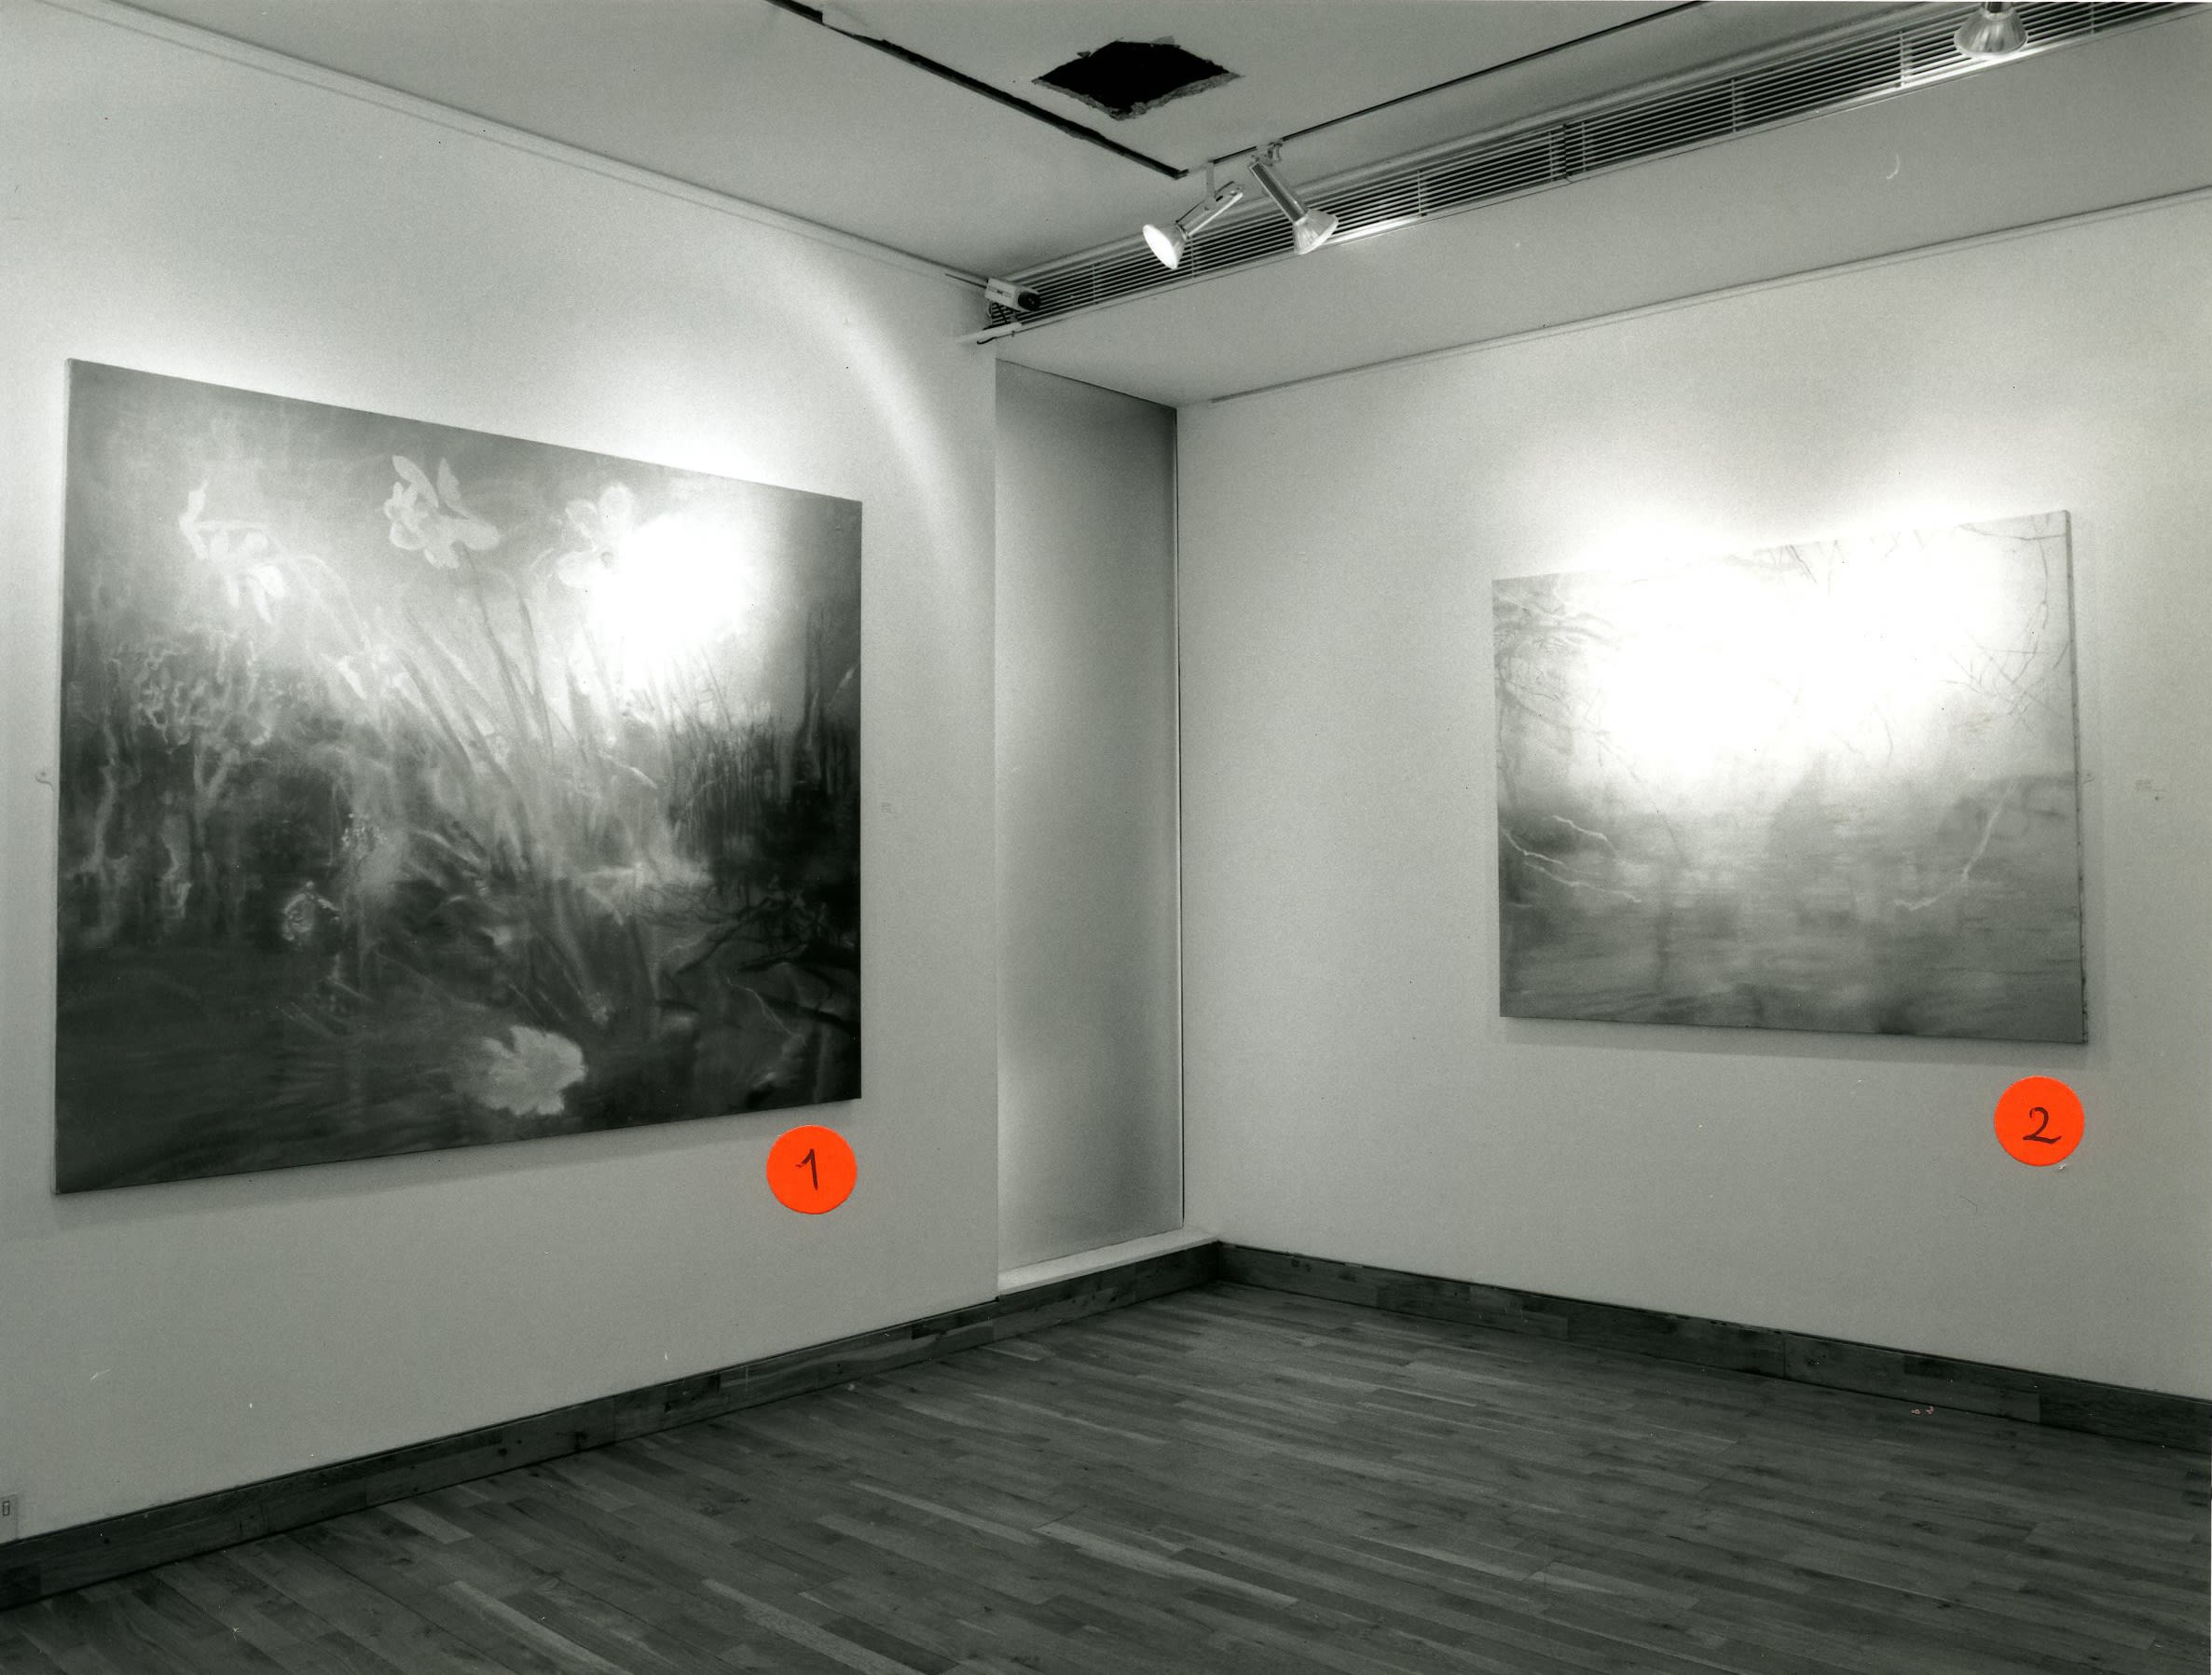 """<span class=""""link fancybox-details-link""""><a href=""""/exhibitions/157/works/image_standalone684/"""">View Detail Page</a></span><p>MARINA KARELLA 